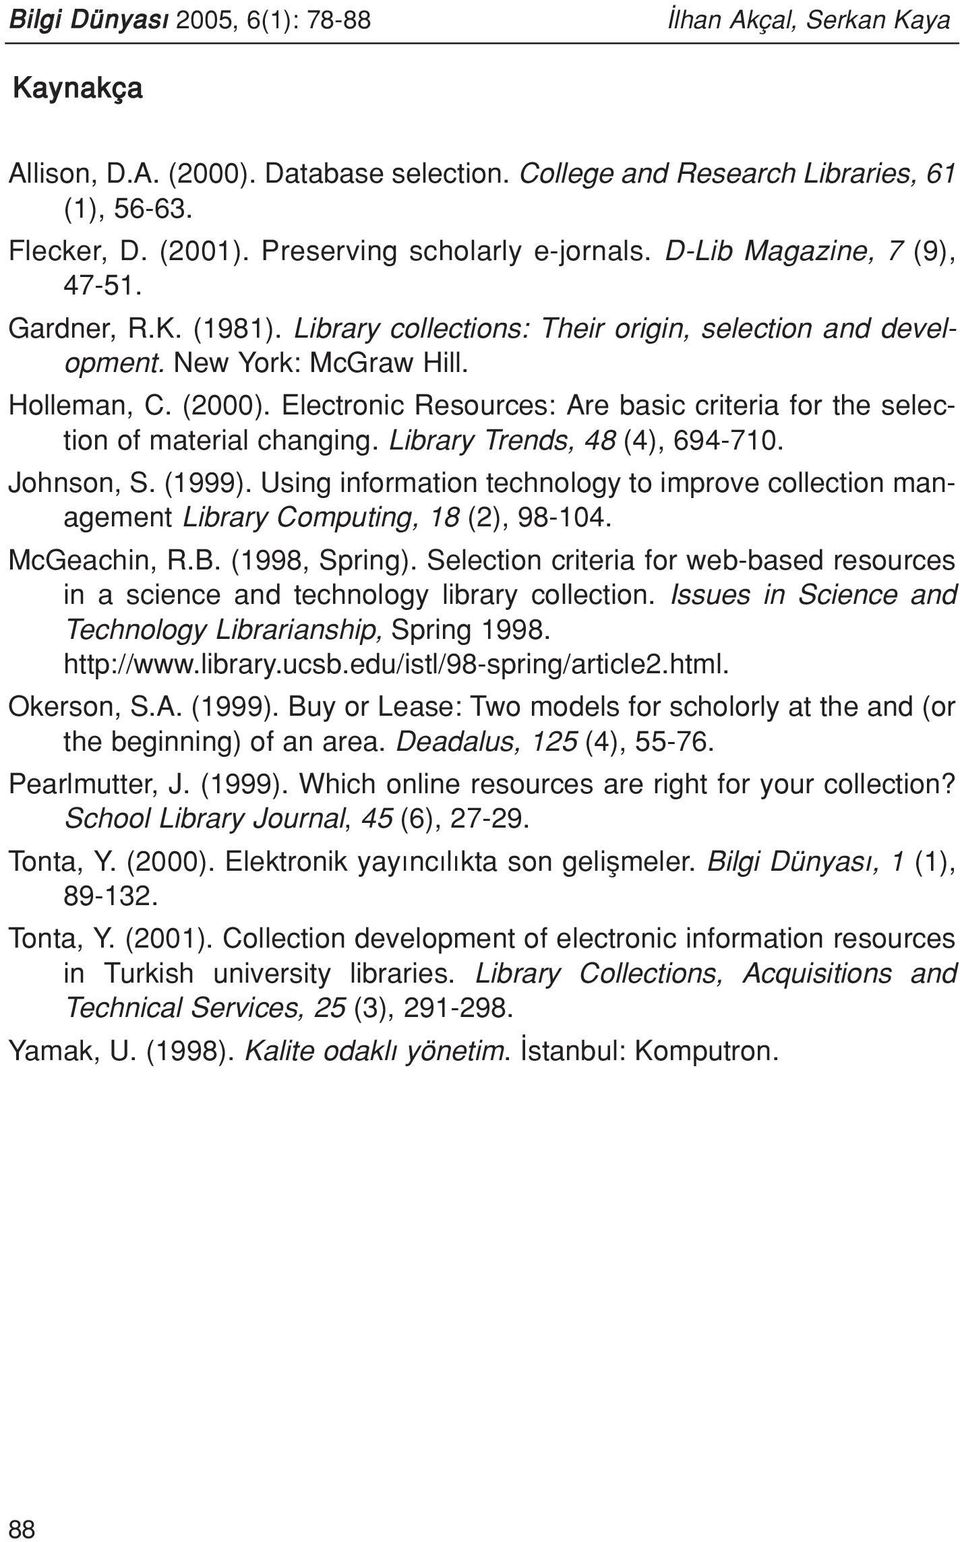 Electronic Resources: Are basic criteria for the selection of material changing. Library Trends, 48 (4), 694-710. Johnson, S. (1999).